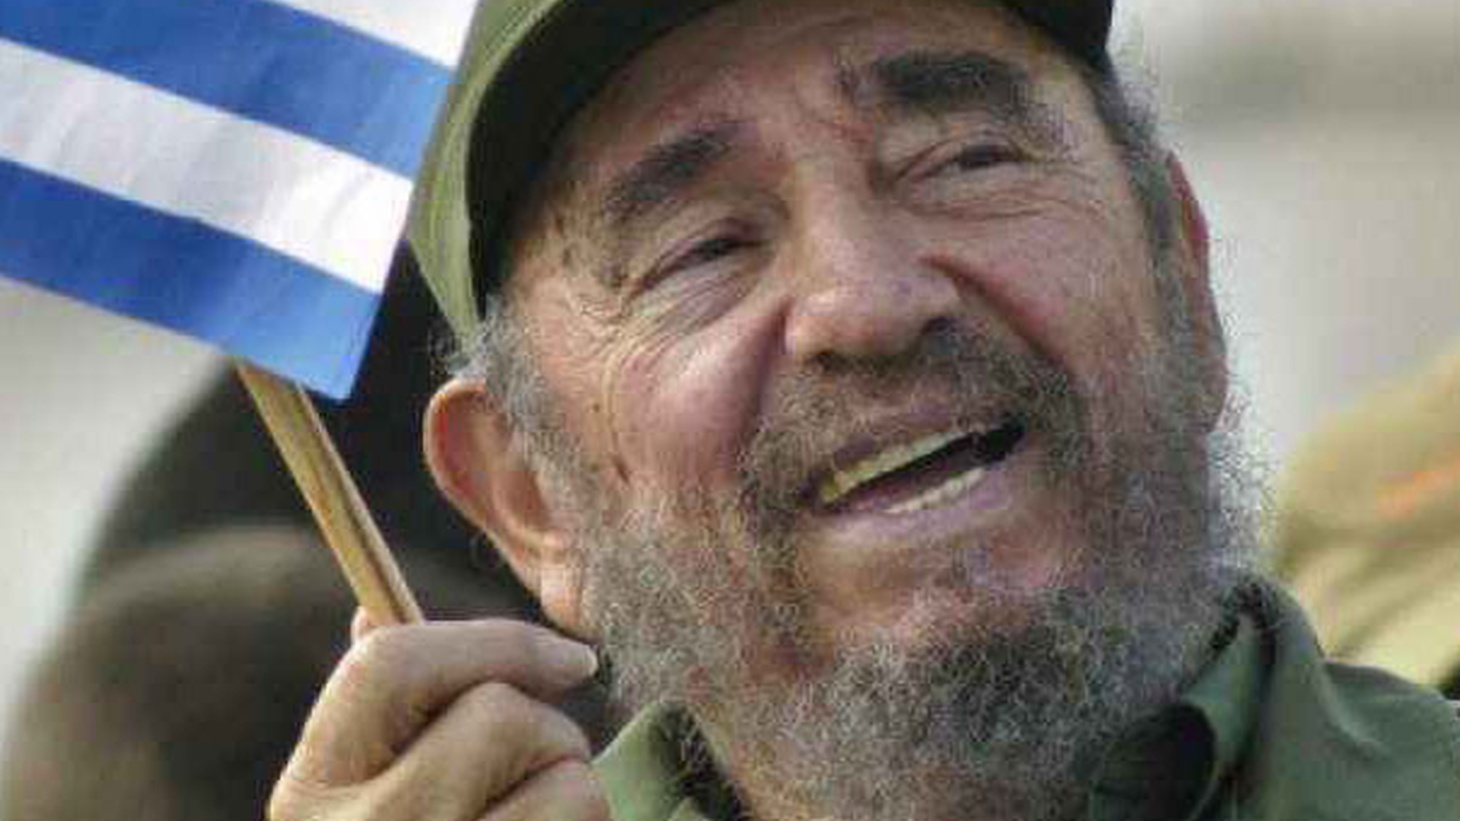 After Fidel Castro's death on Friday night, President Obama expressed hope that the warming of relations between Cuba and the United States could continue. Donald Trump and members of his transition team issued statements reflecting what Trump said on the campaign trail.